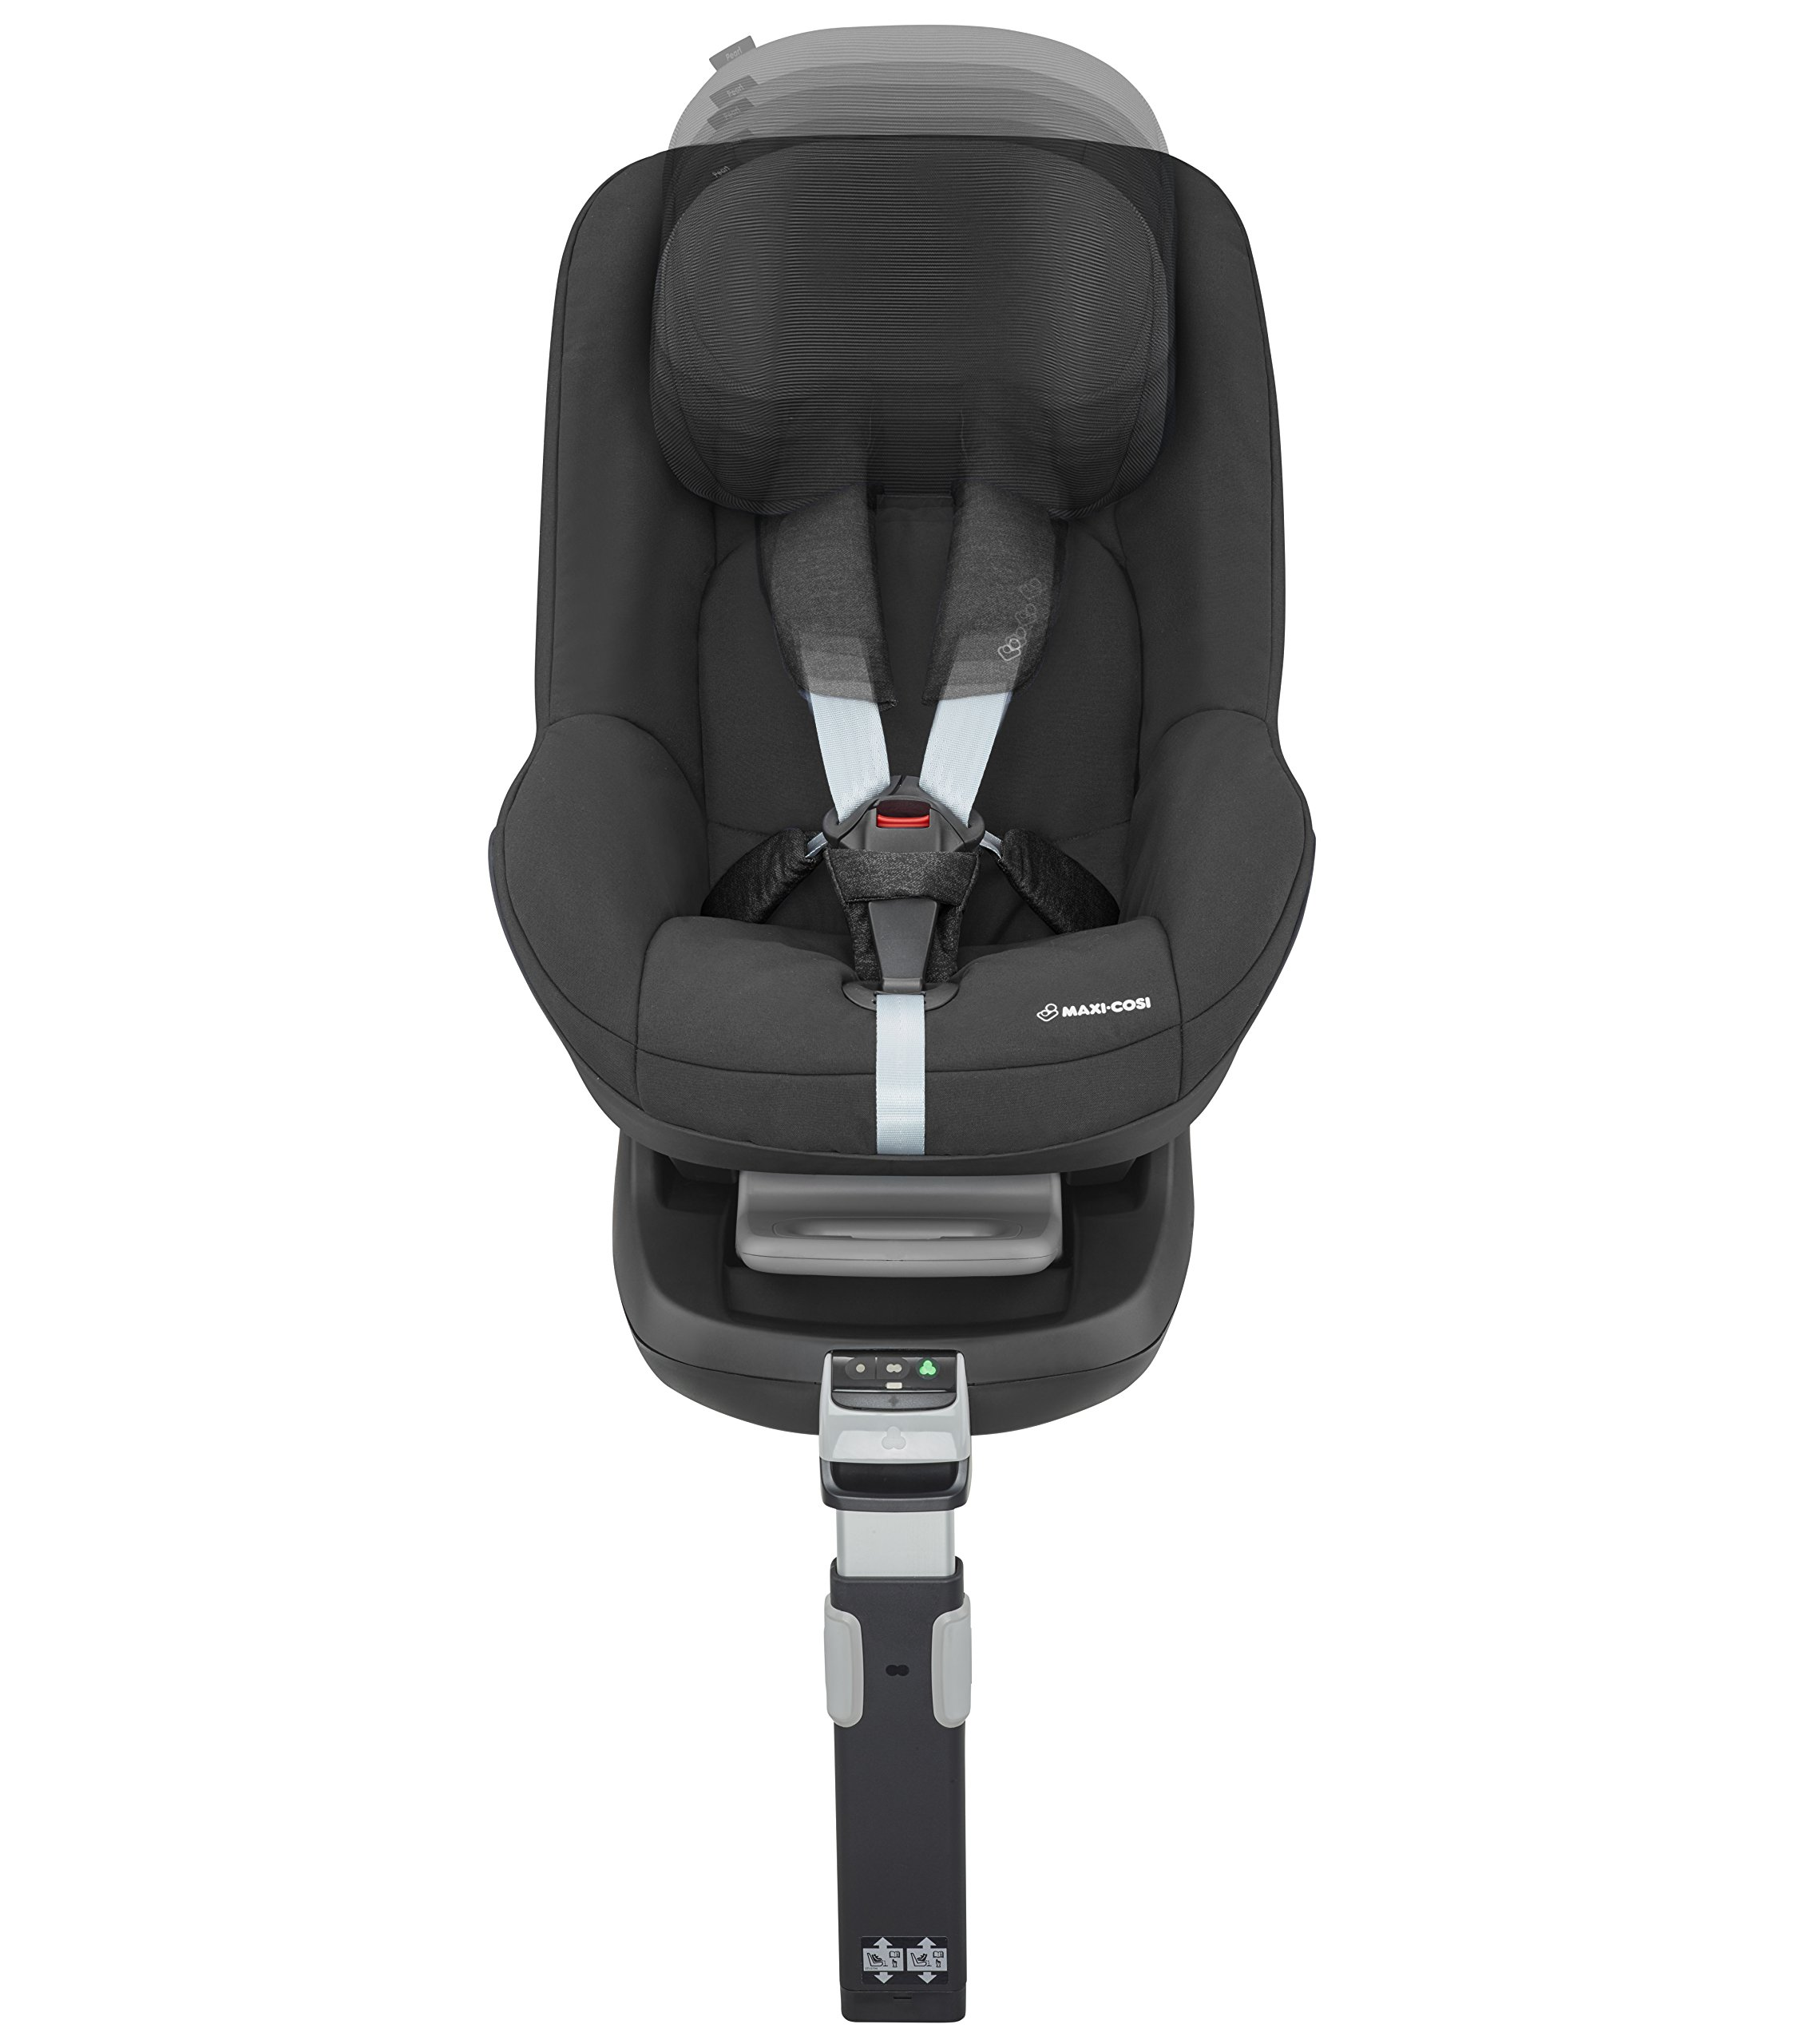 Maxi-Cosi Pearl Toddler Car Seat Group 1, ISOFIX Car Seat, Compact, , 9 Months - 4 Years, 9-18 kg, Nomad Black Maxi-Cosi Interactive visual and audible feedback when the pearl is correctly installed with the maxi-cosi family fix base in the car Spring-loaded, stay open harness to make buckling up your toddler easier as the harness stays out of the way Simultaneous harness & headrest adjustment can be operated with one-hand 7